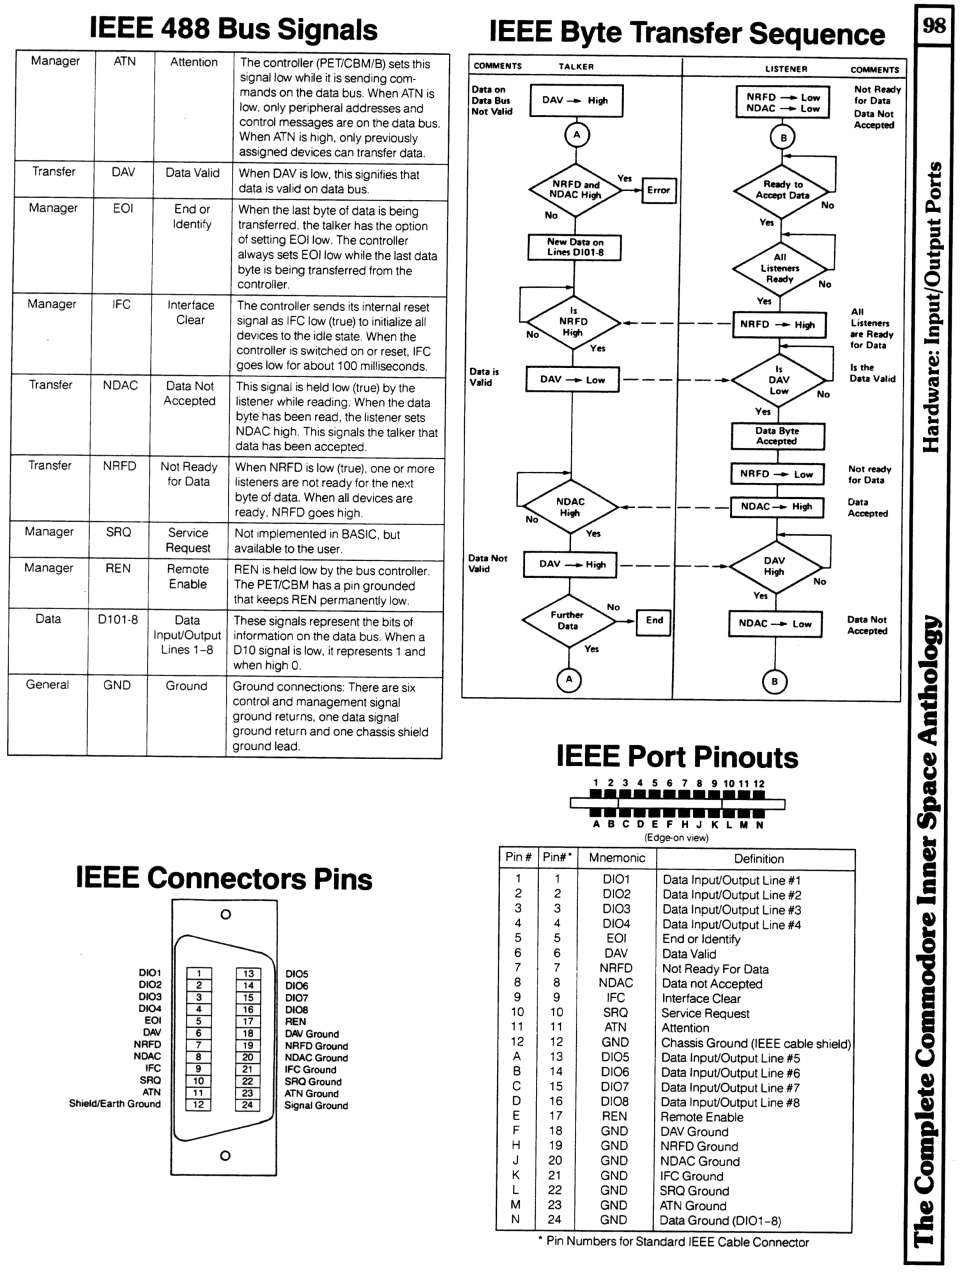 [960×1272 Hardware Section: IEEE 488 Bus Signals, IEEE Byte Transfer Sequence, IEEE Cable Connector Pinouts, IEEE Port Pinouts]